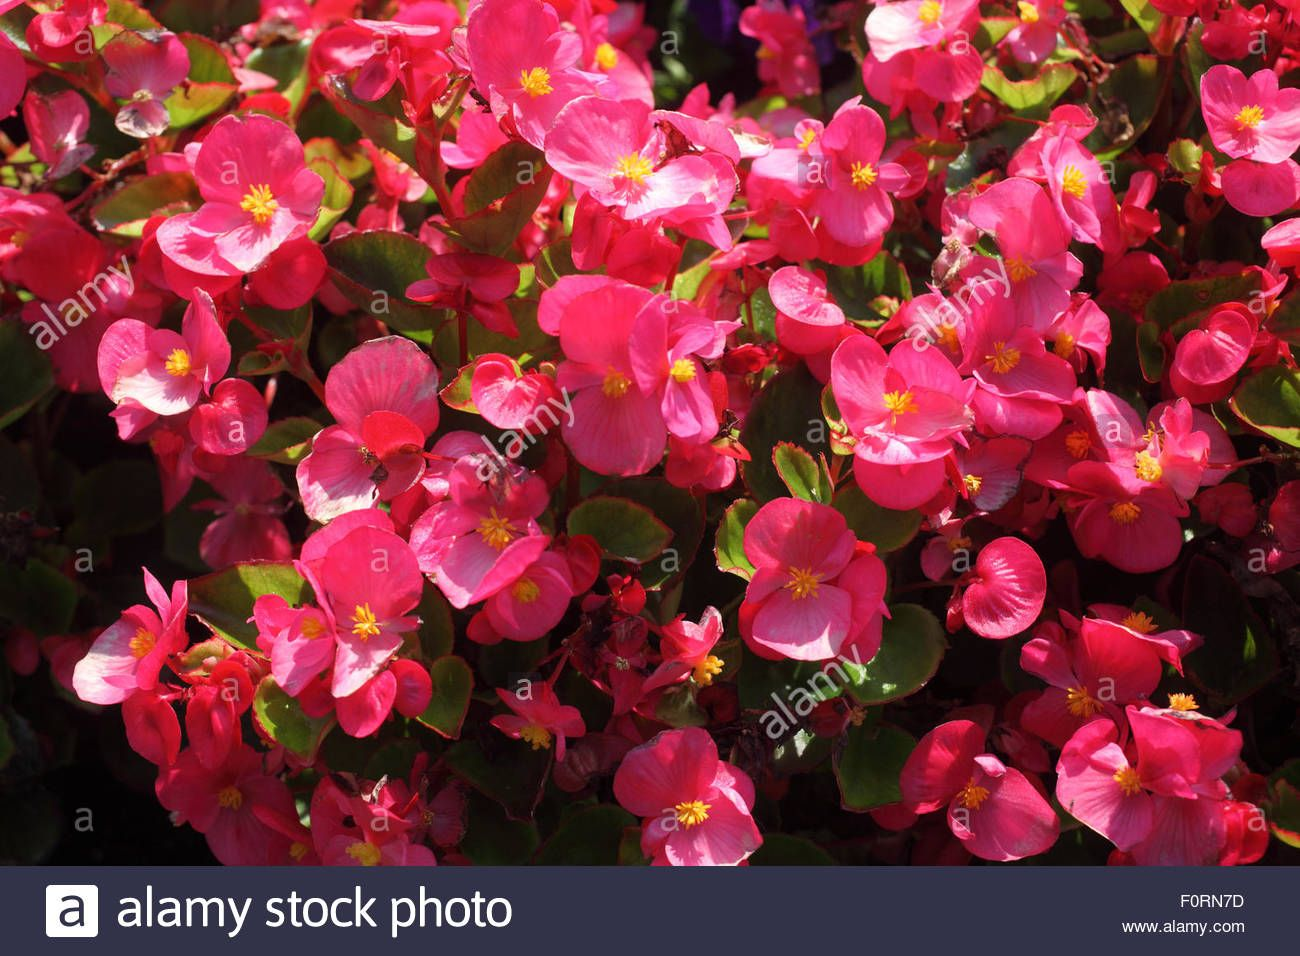 Stock Photo Begonia Bada Bing Rose Close Up Of Flower Begonia Flowers Stock Photos